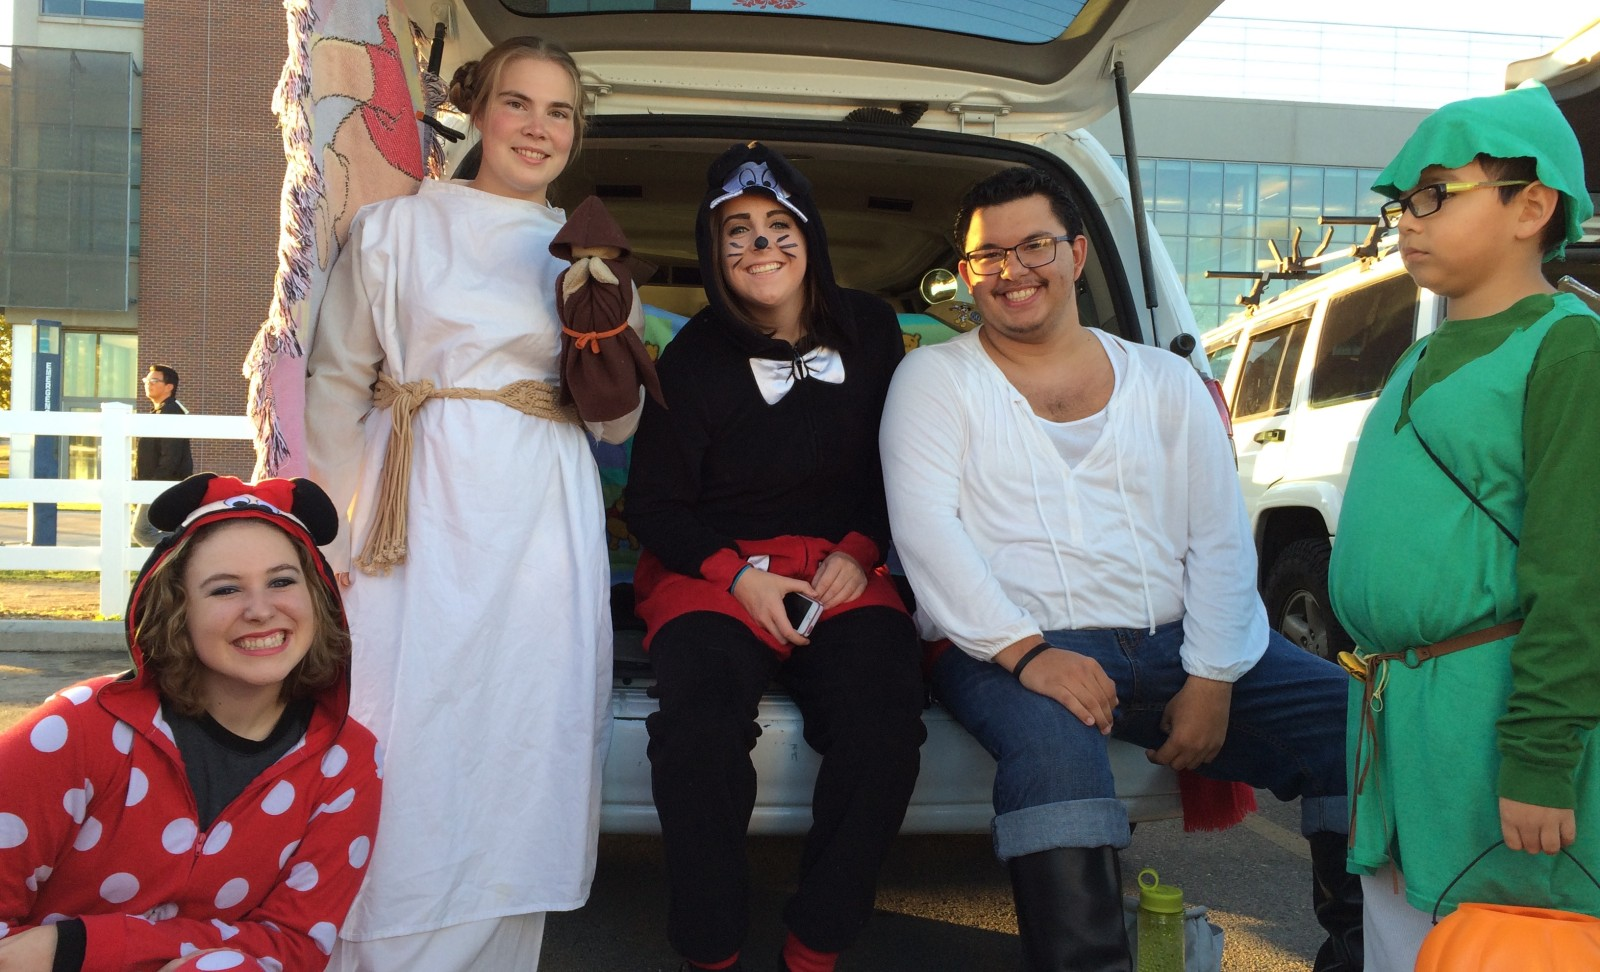 Title - TIPPS Leadership Club members dressed as Disney characters